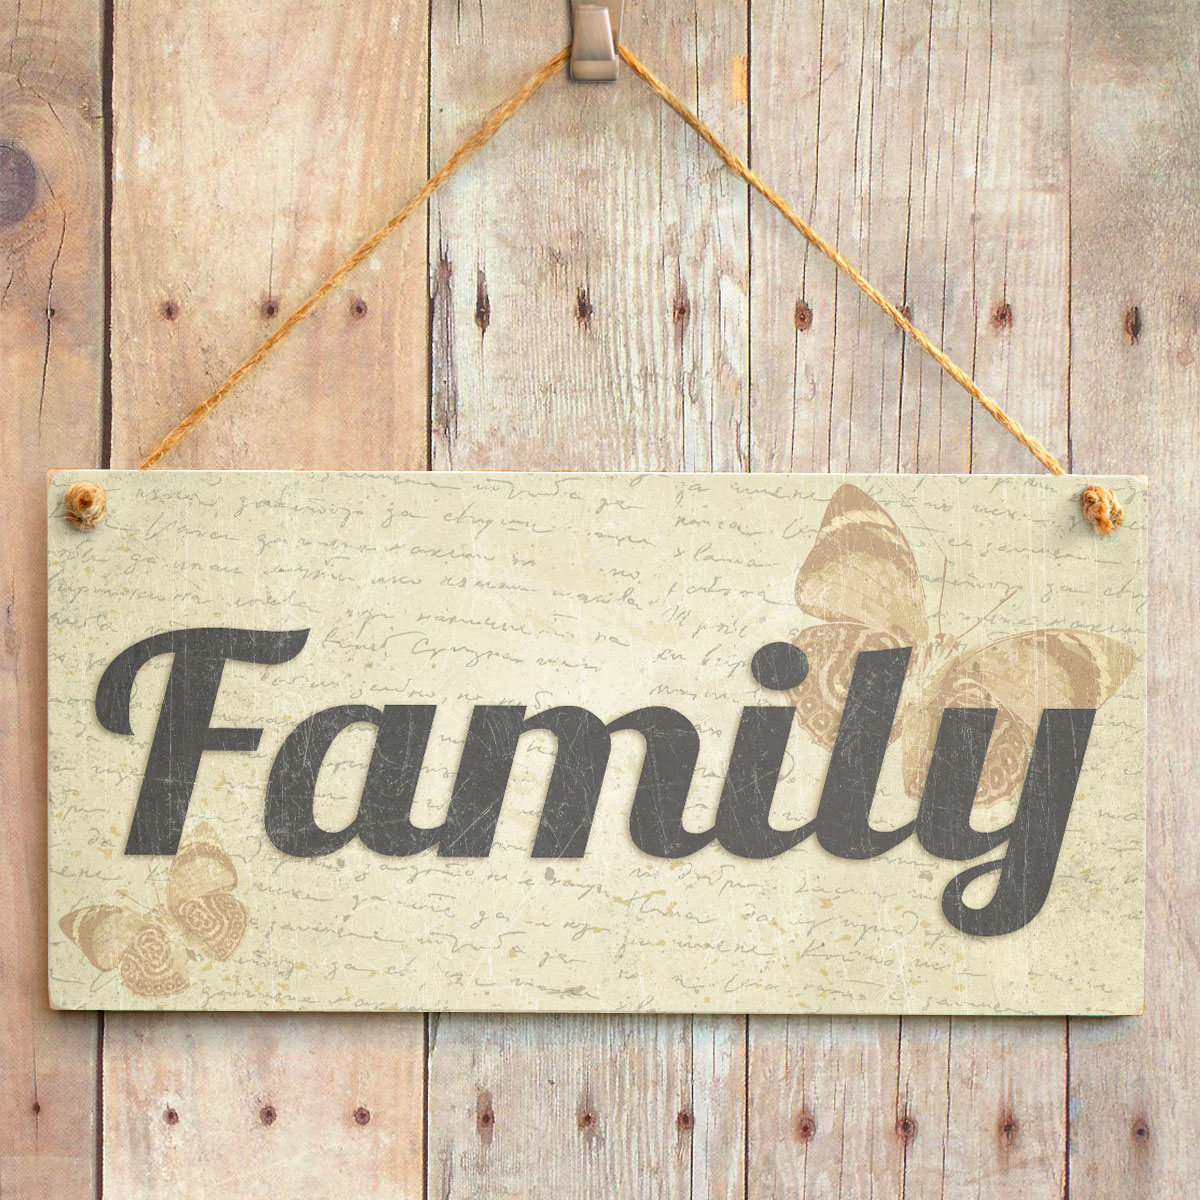 Family Home Decor: Handmade Shabby Chic Home Decor Sign Plaque